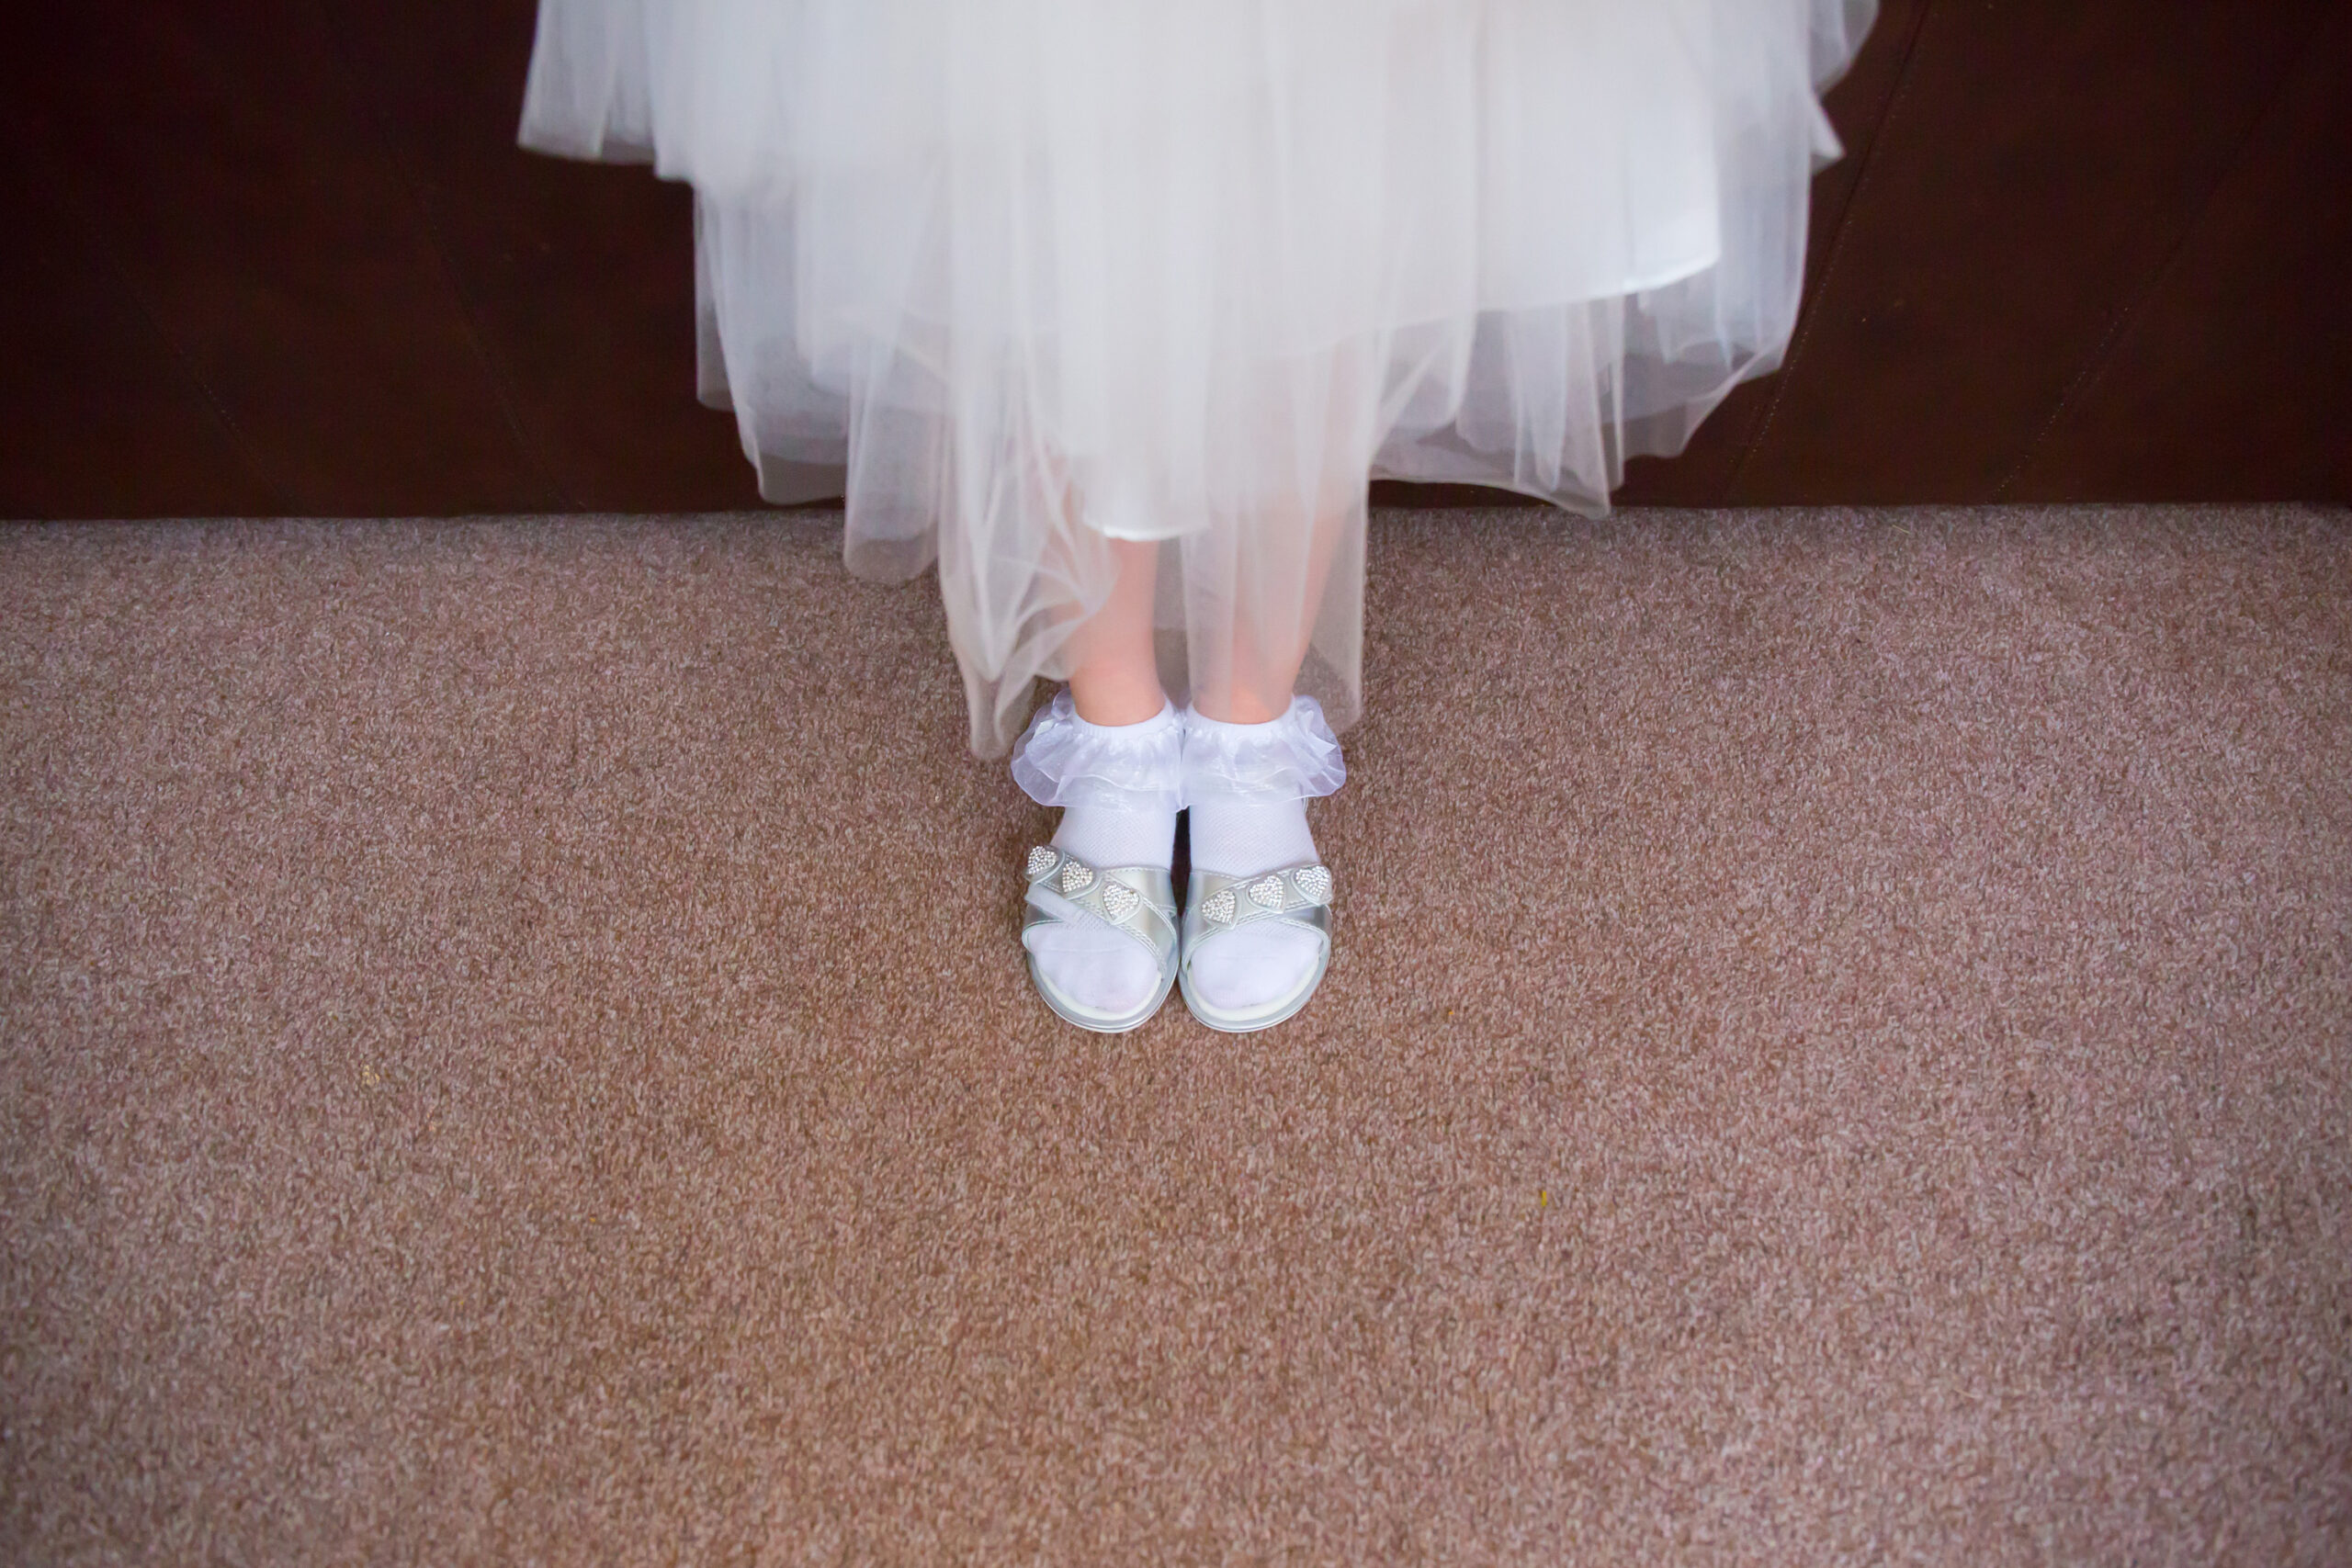 shot of the feet of the flower girl